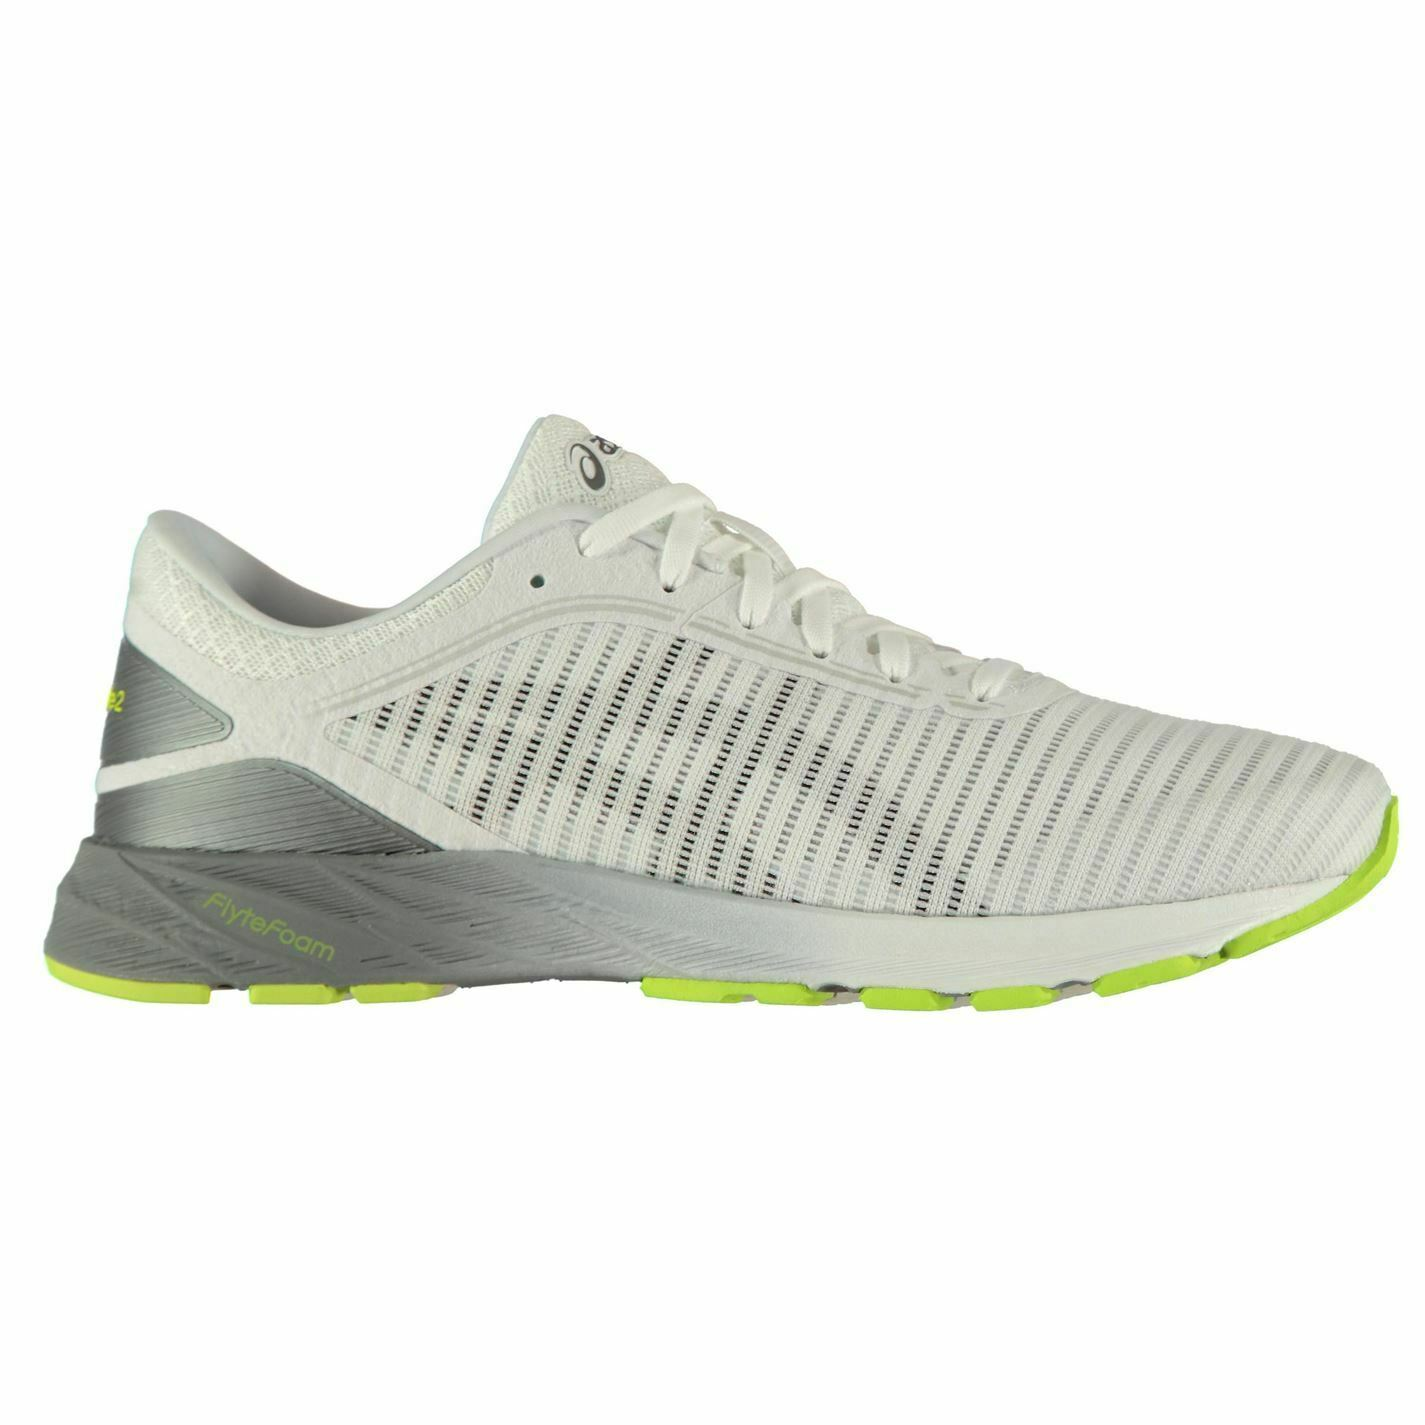 Asics  Mens Dynaflyte 2 Running shoes Athletic Trainers Sneakers Sport Footwear  your satisfaction is our target